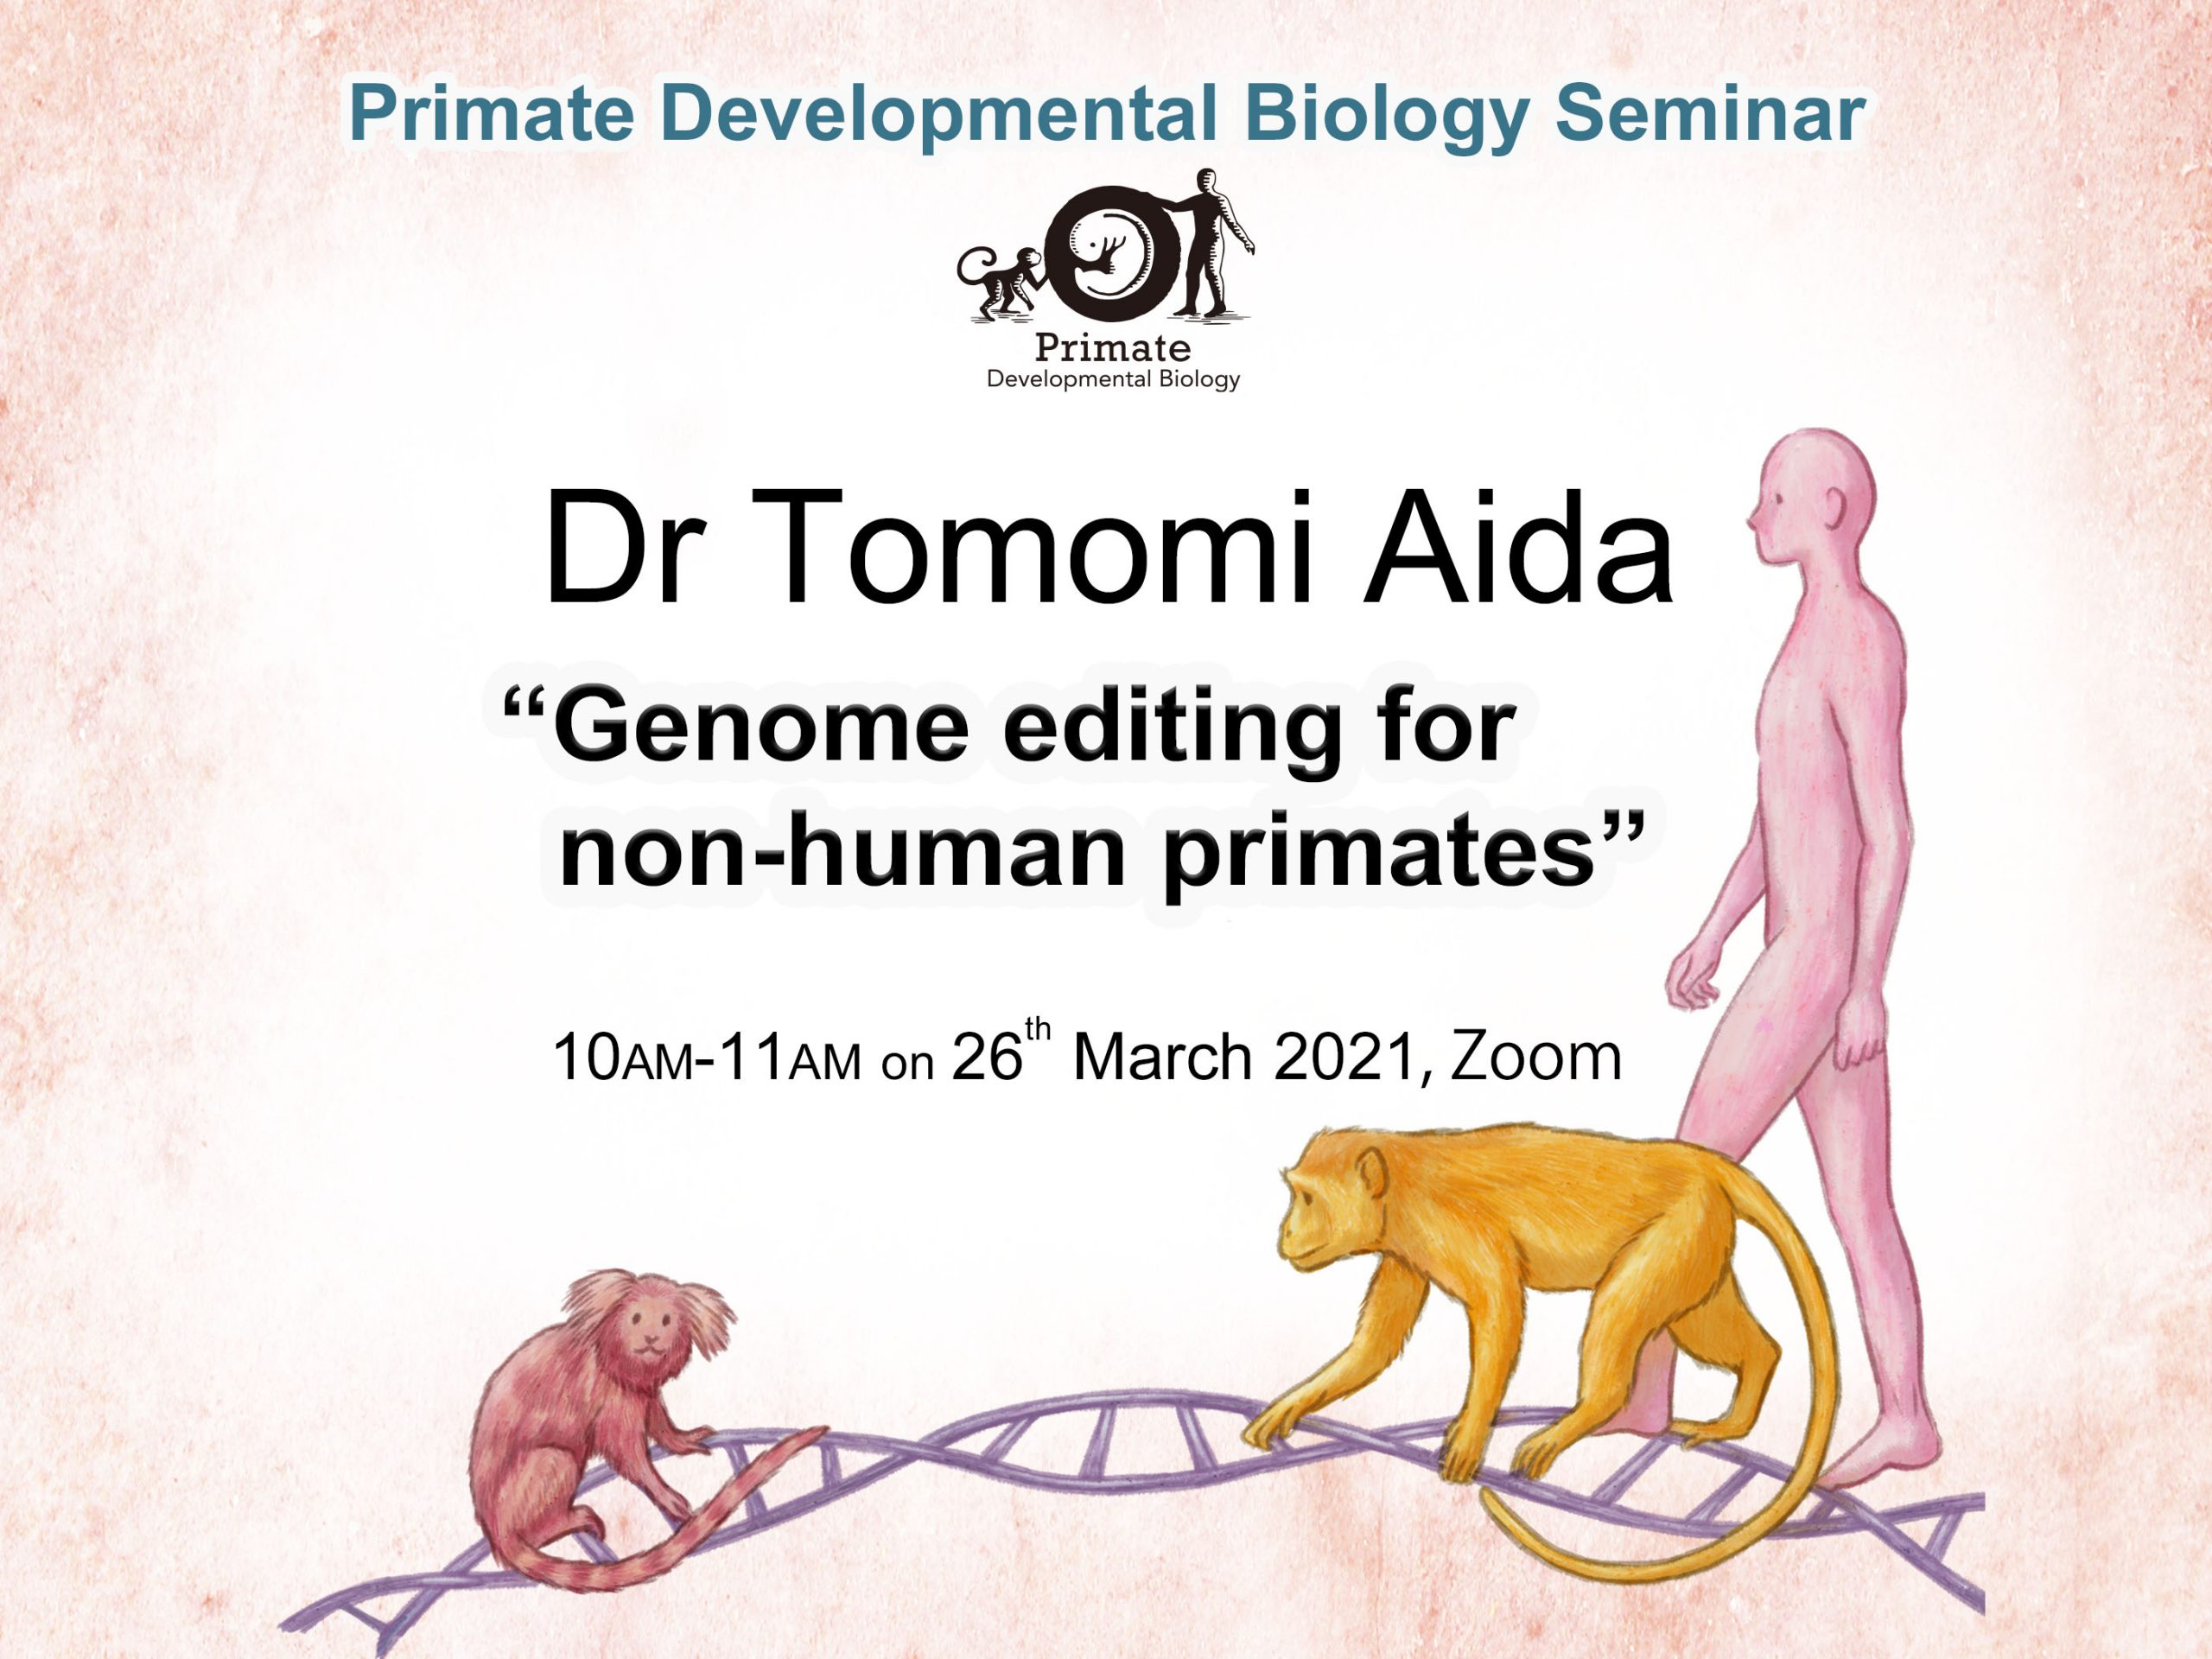 Primate Developmental Biology Seminar: (相田 知海 博士)